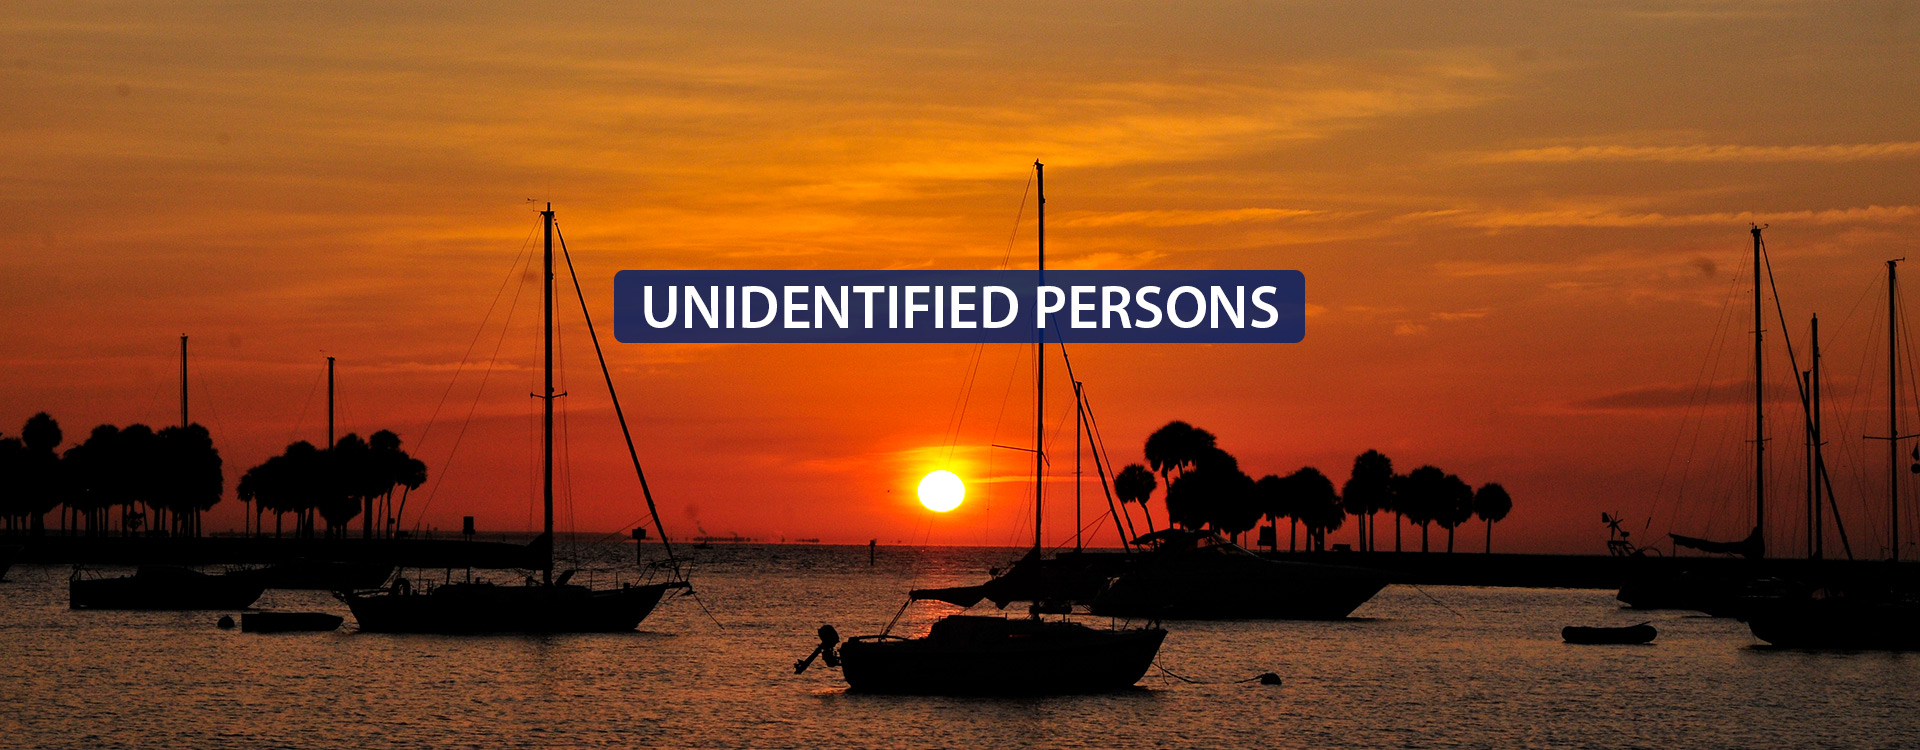 Unidentified Persons